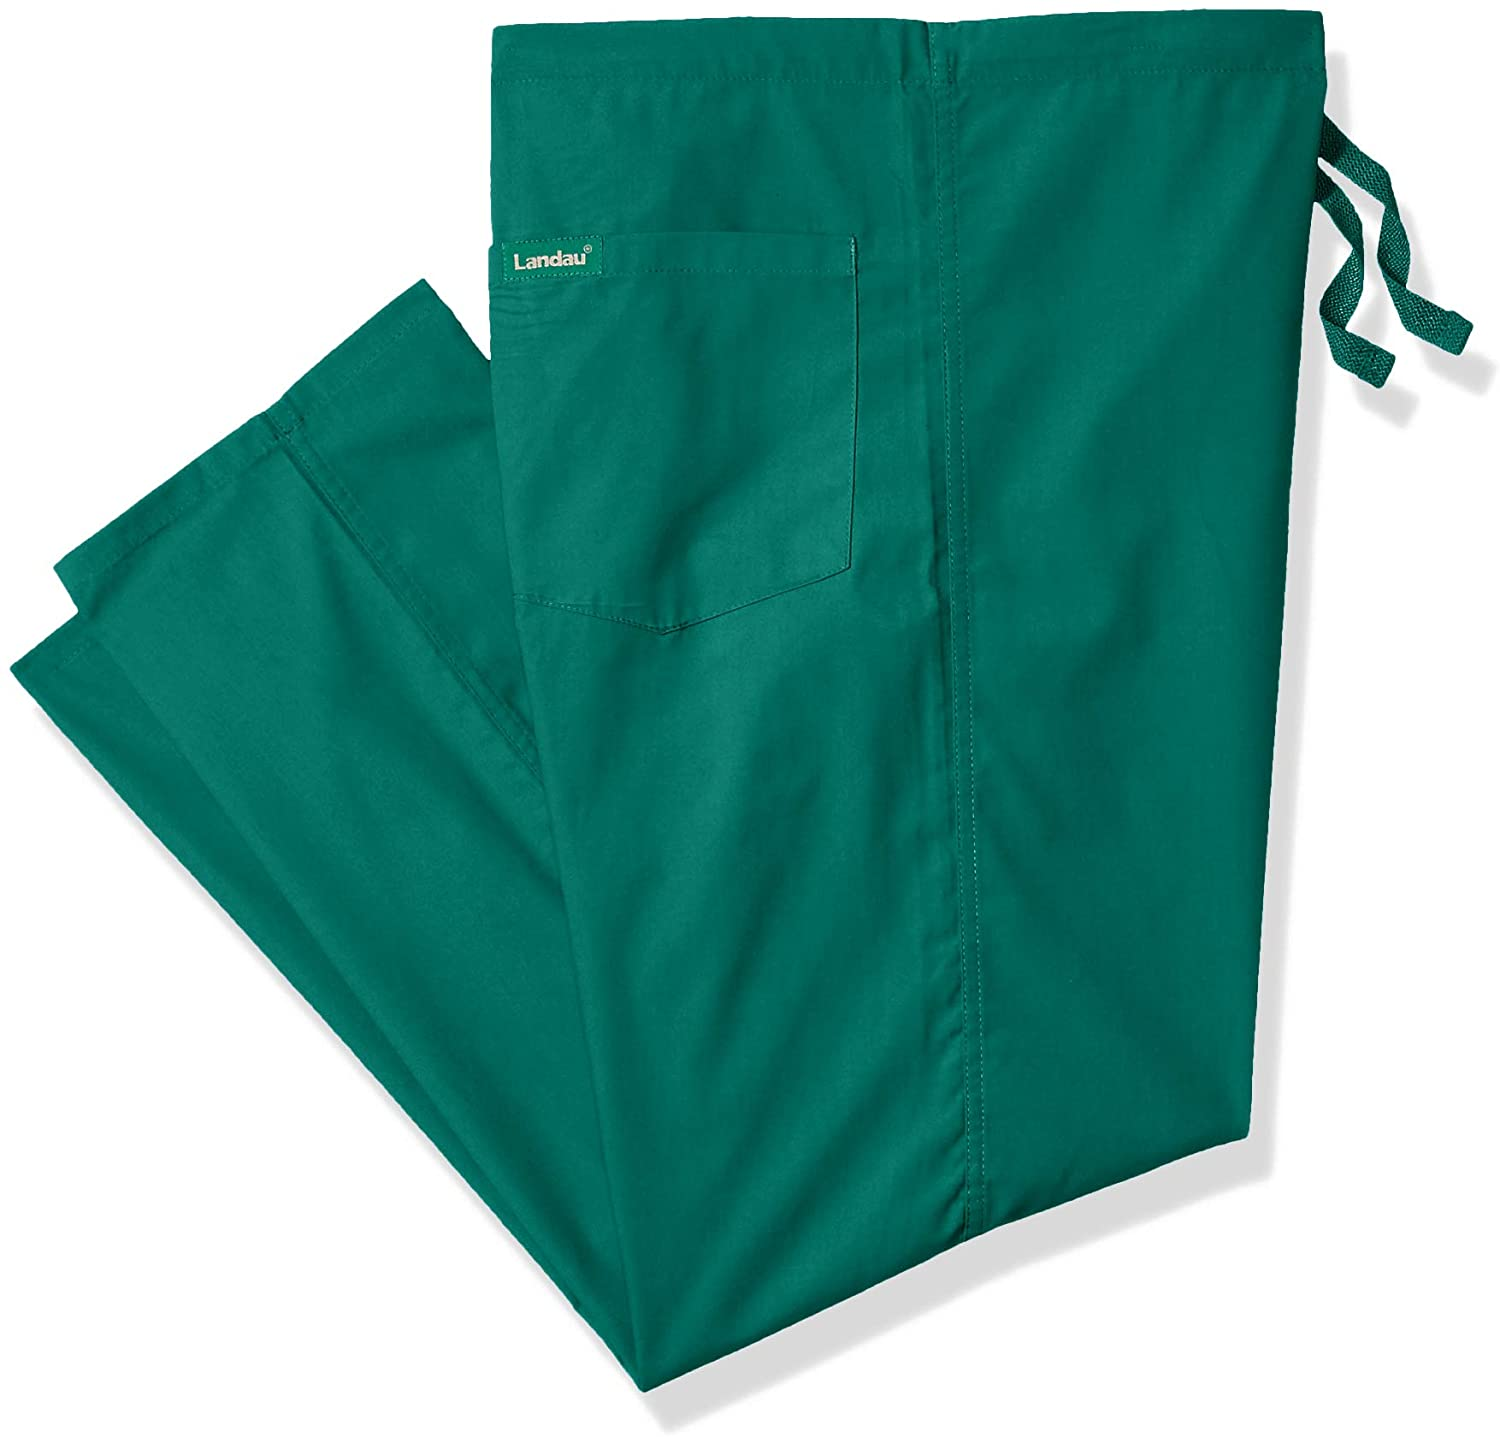 Landau 'Unisex Reversible Scrub Pant' Scrub Bottoms Hunter Green Medium Petite